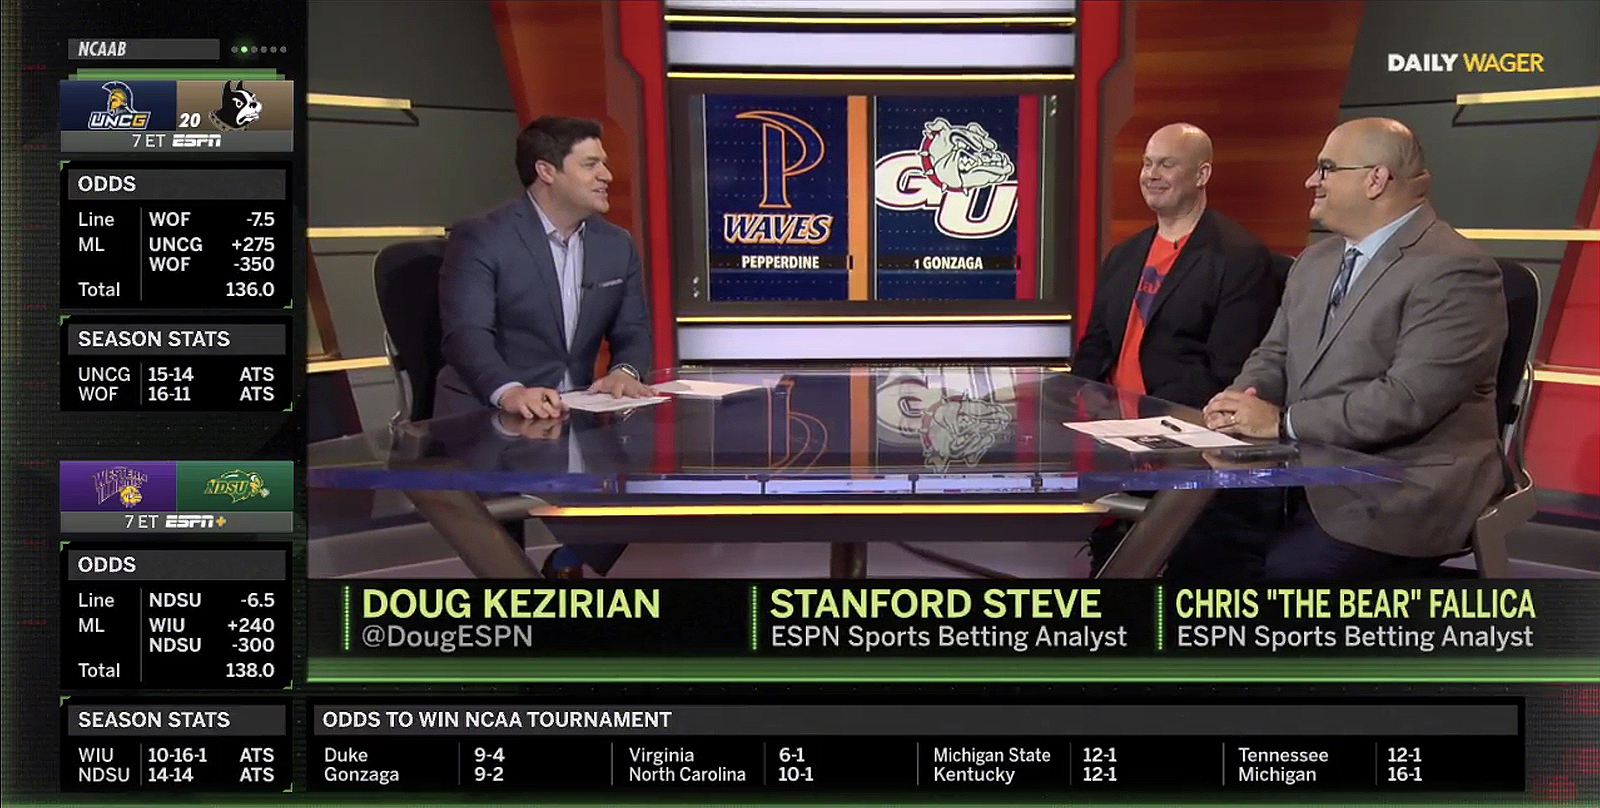 Espn S Daily Wager With Doug Kezirian Motion Graphics And